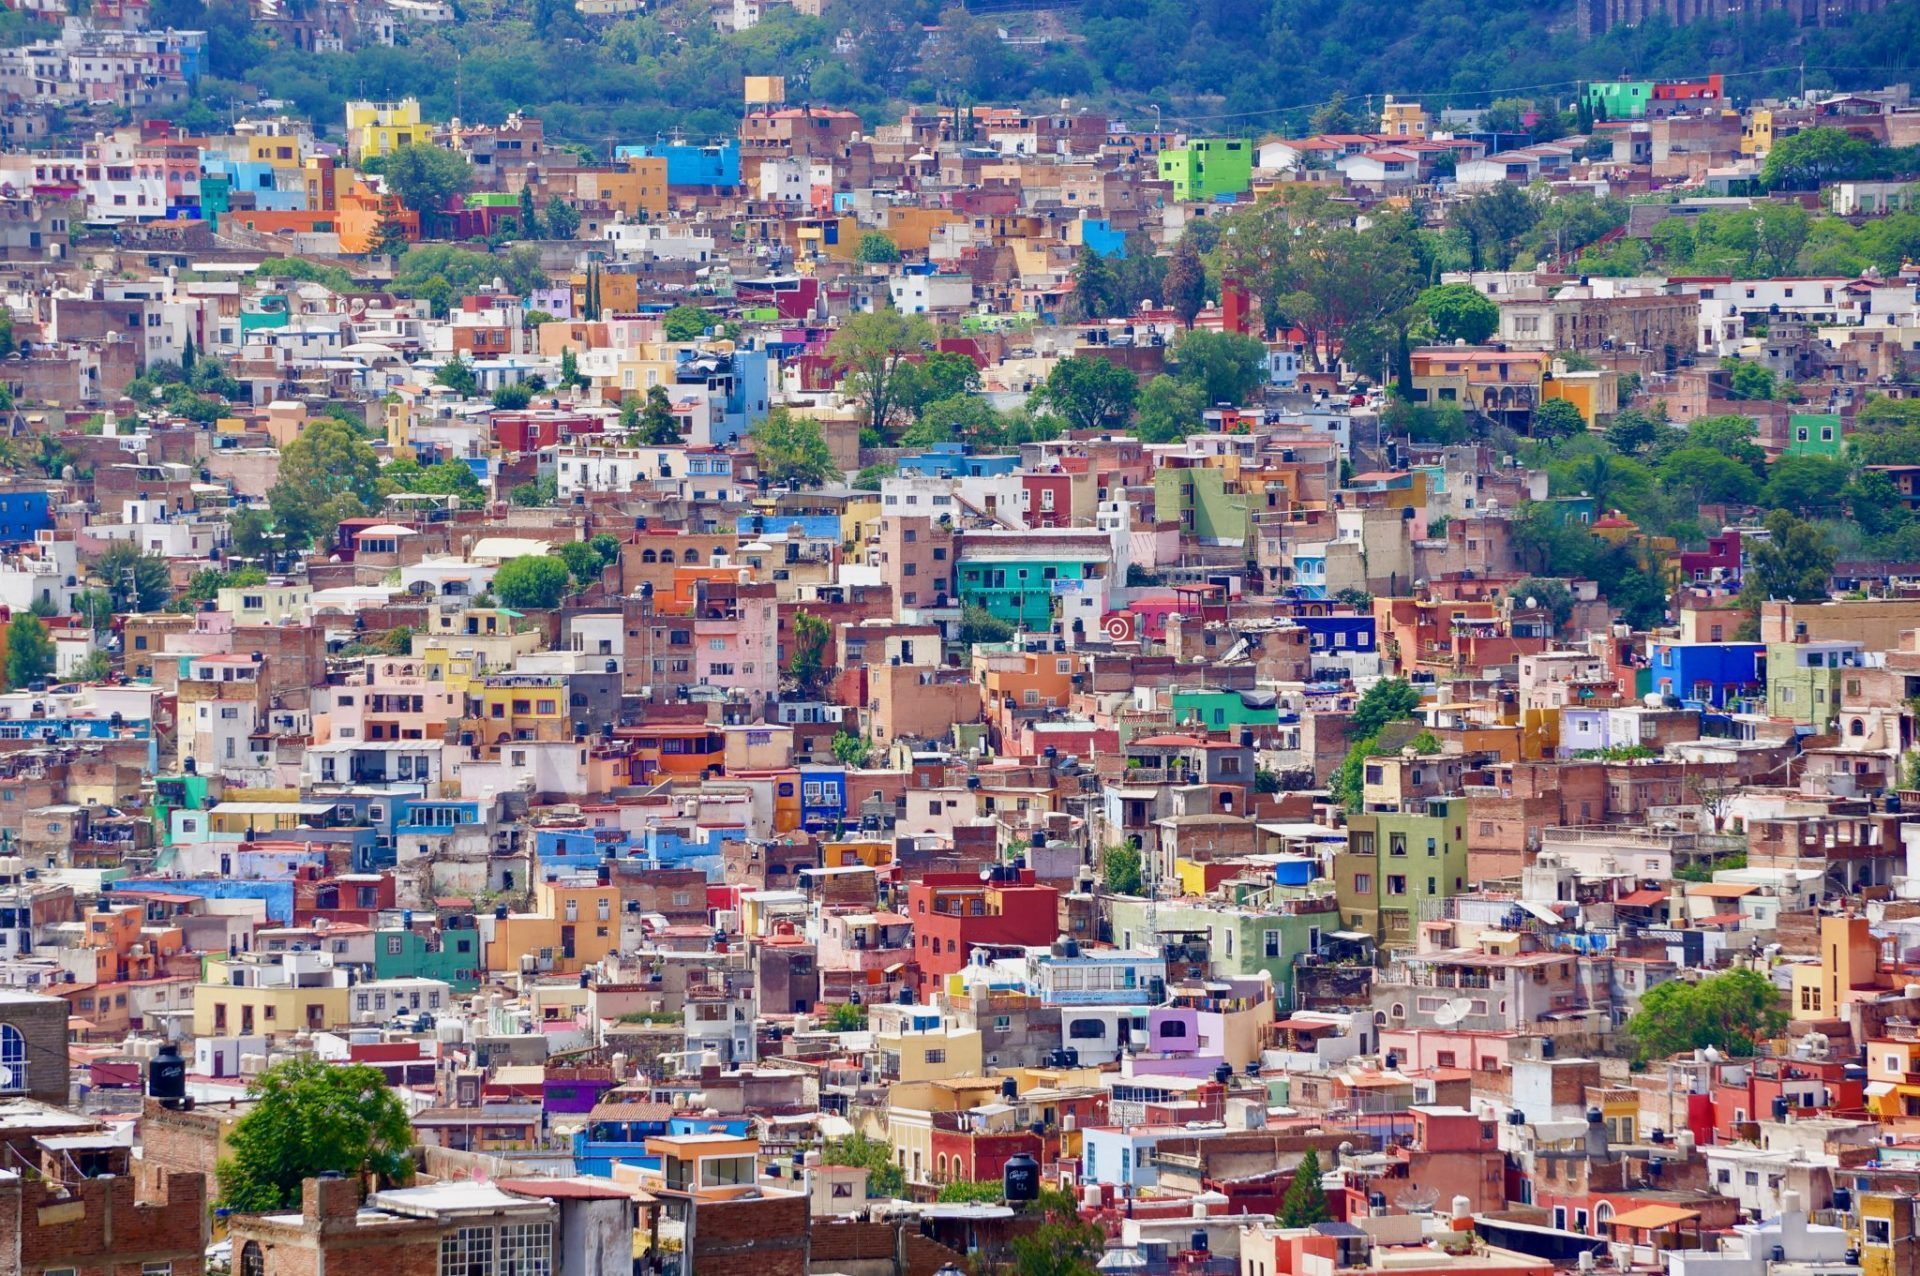 View of Guanajuato Mexico from above